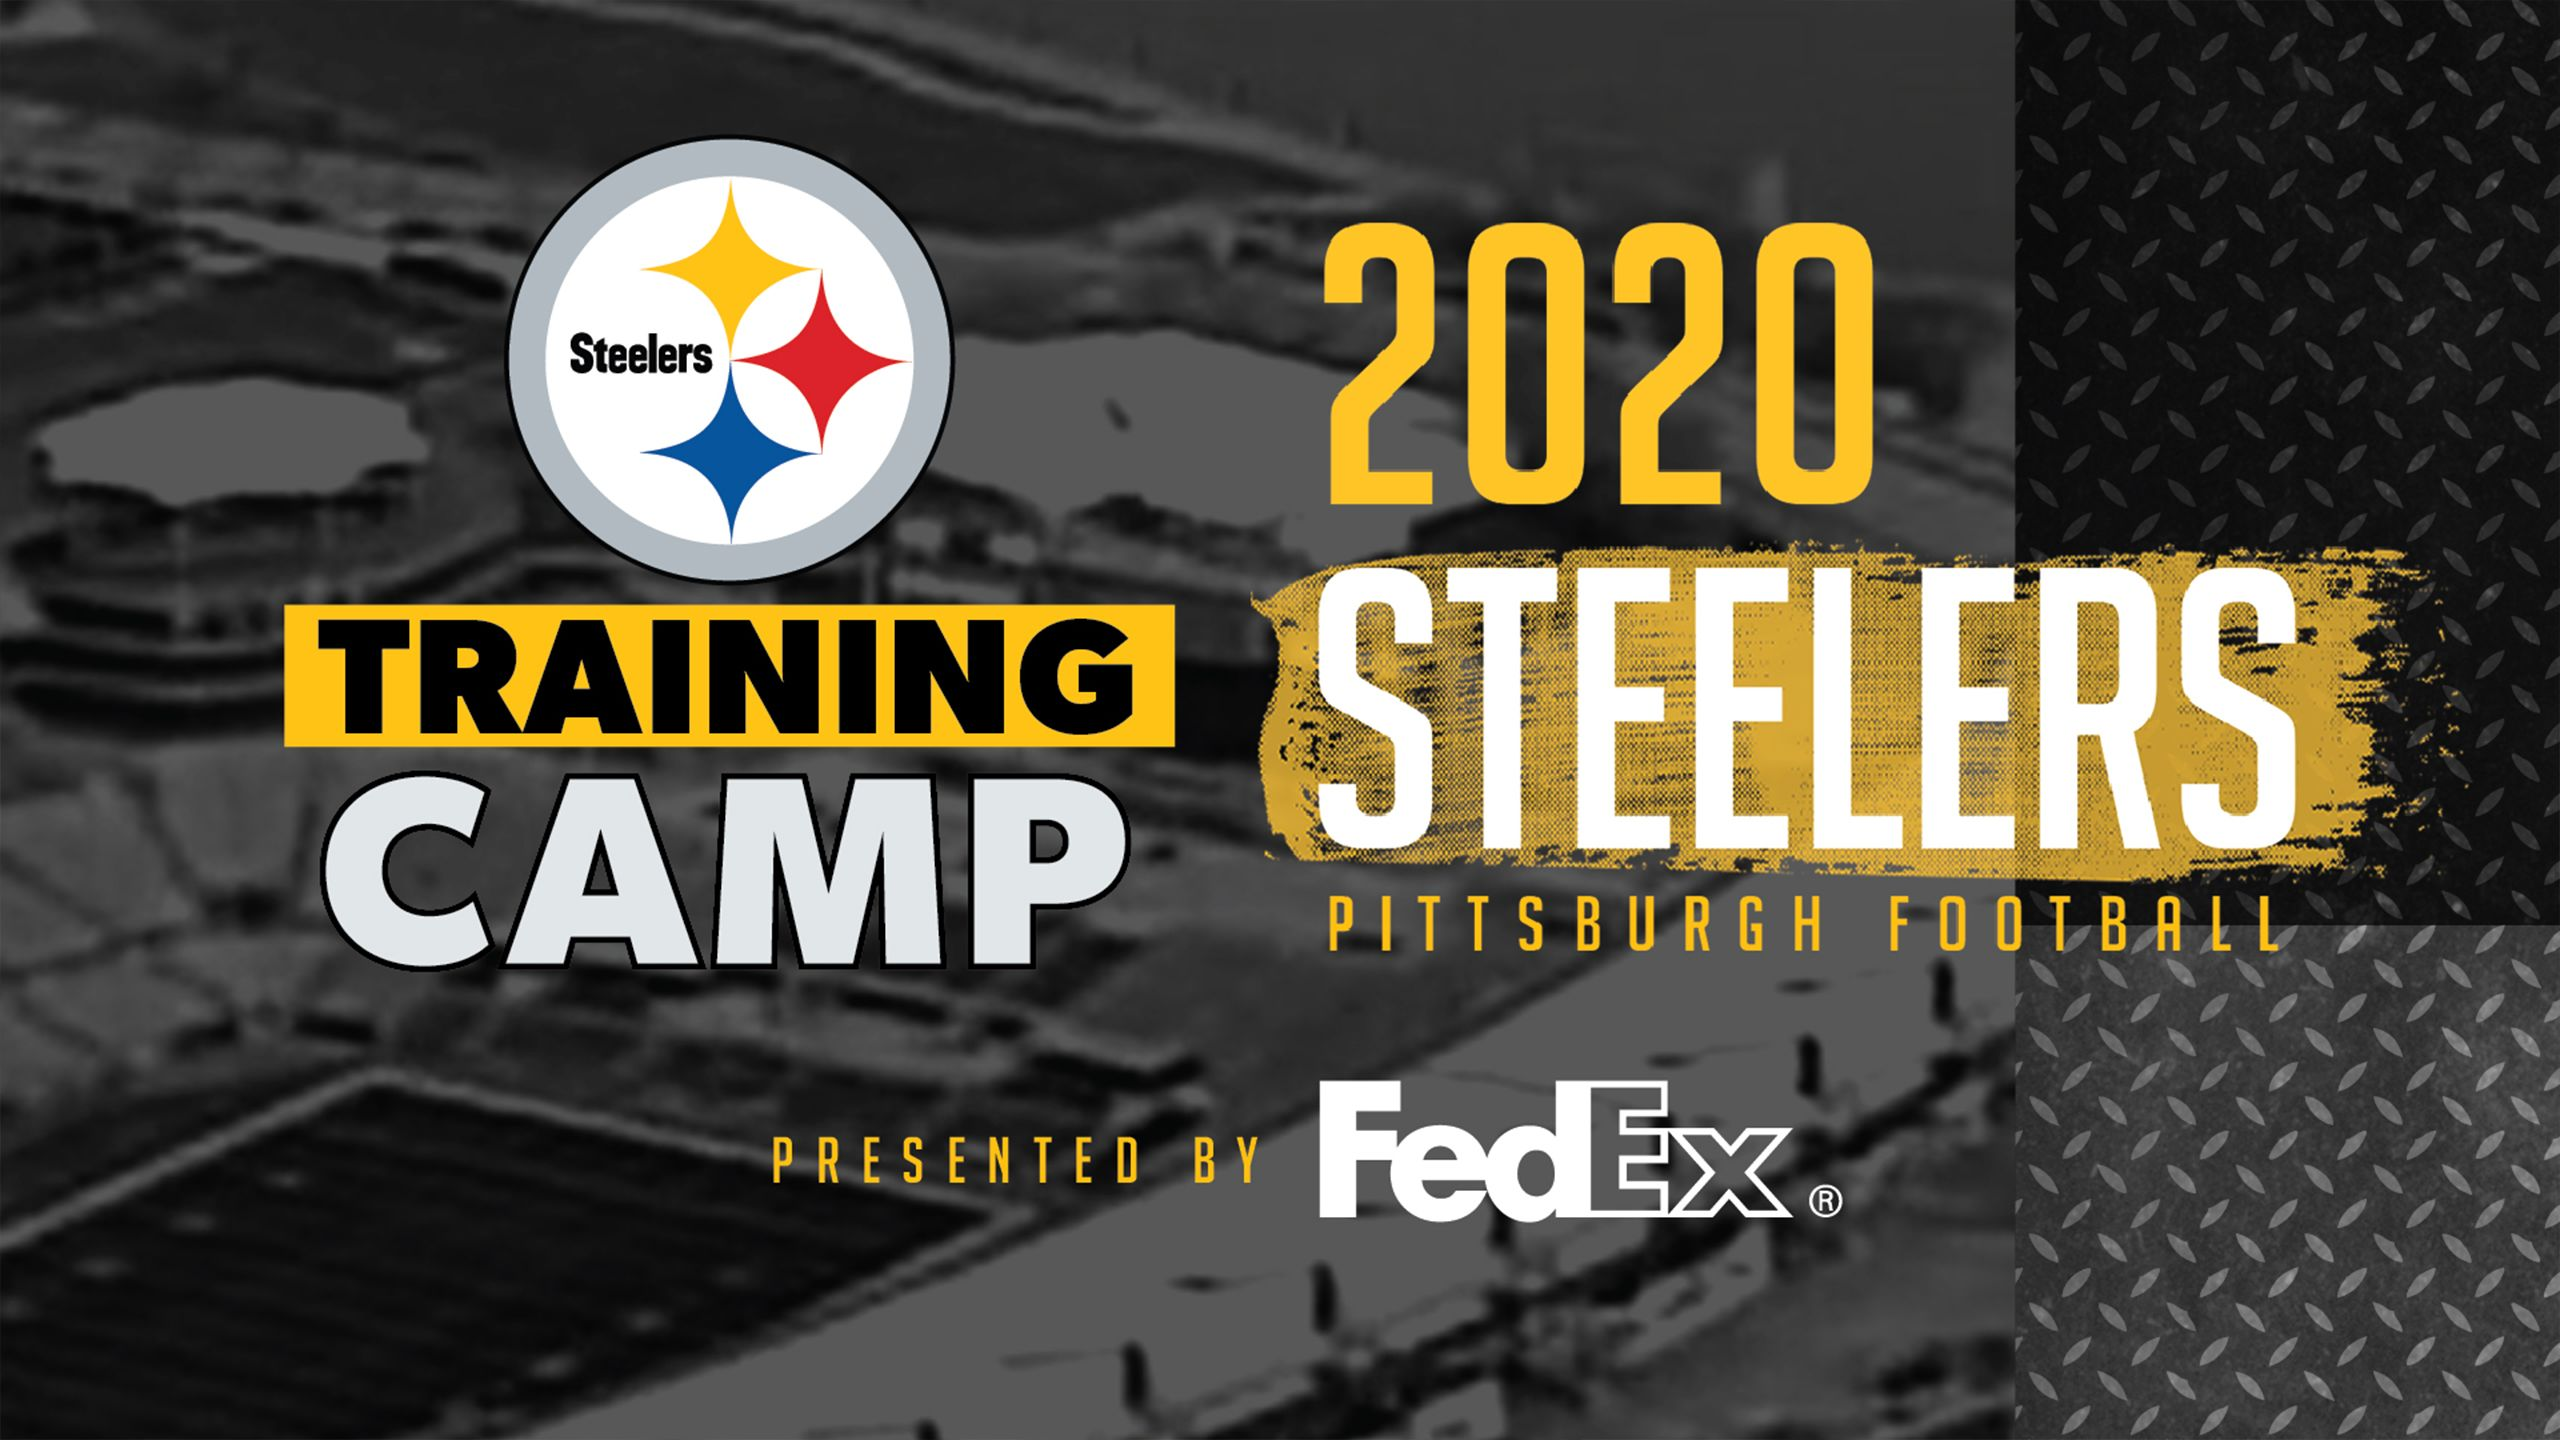 Steelers Camp 2020, Presented By Fed Ex